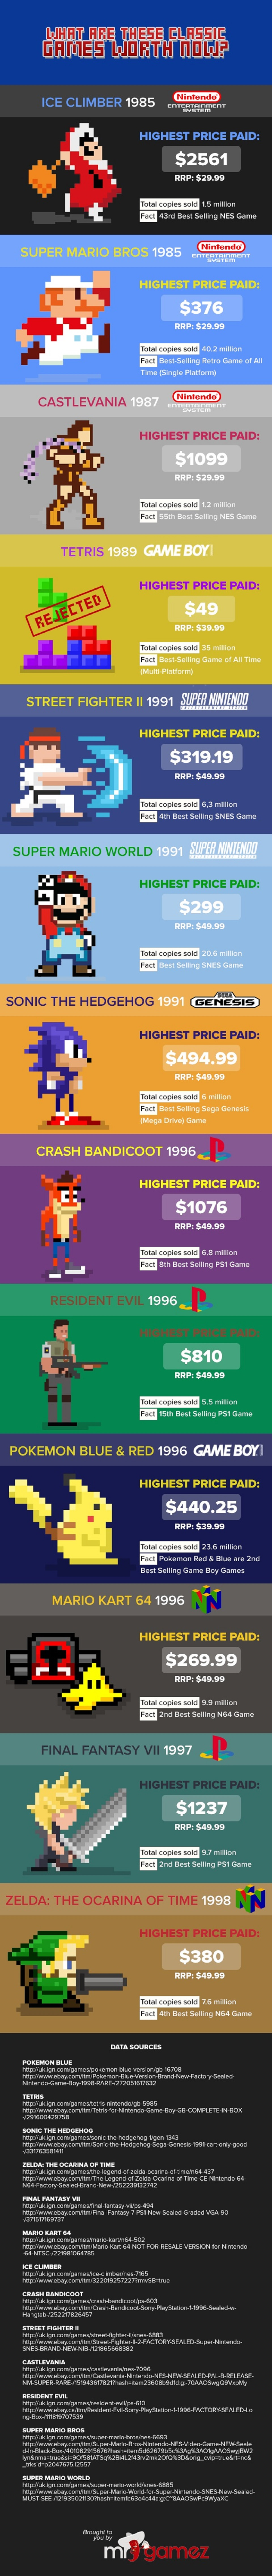 Online Game Company Compiles Peak Values List of '80s and